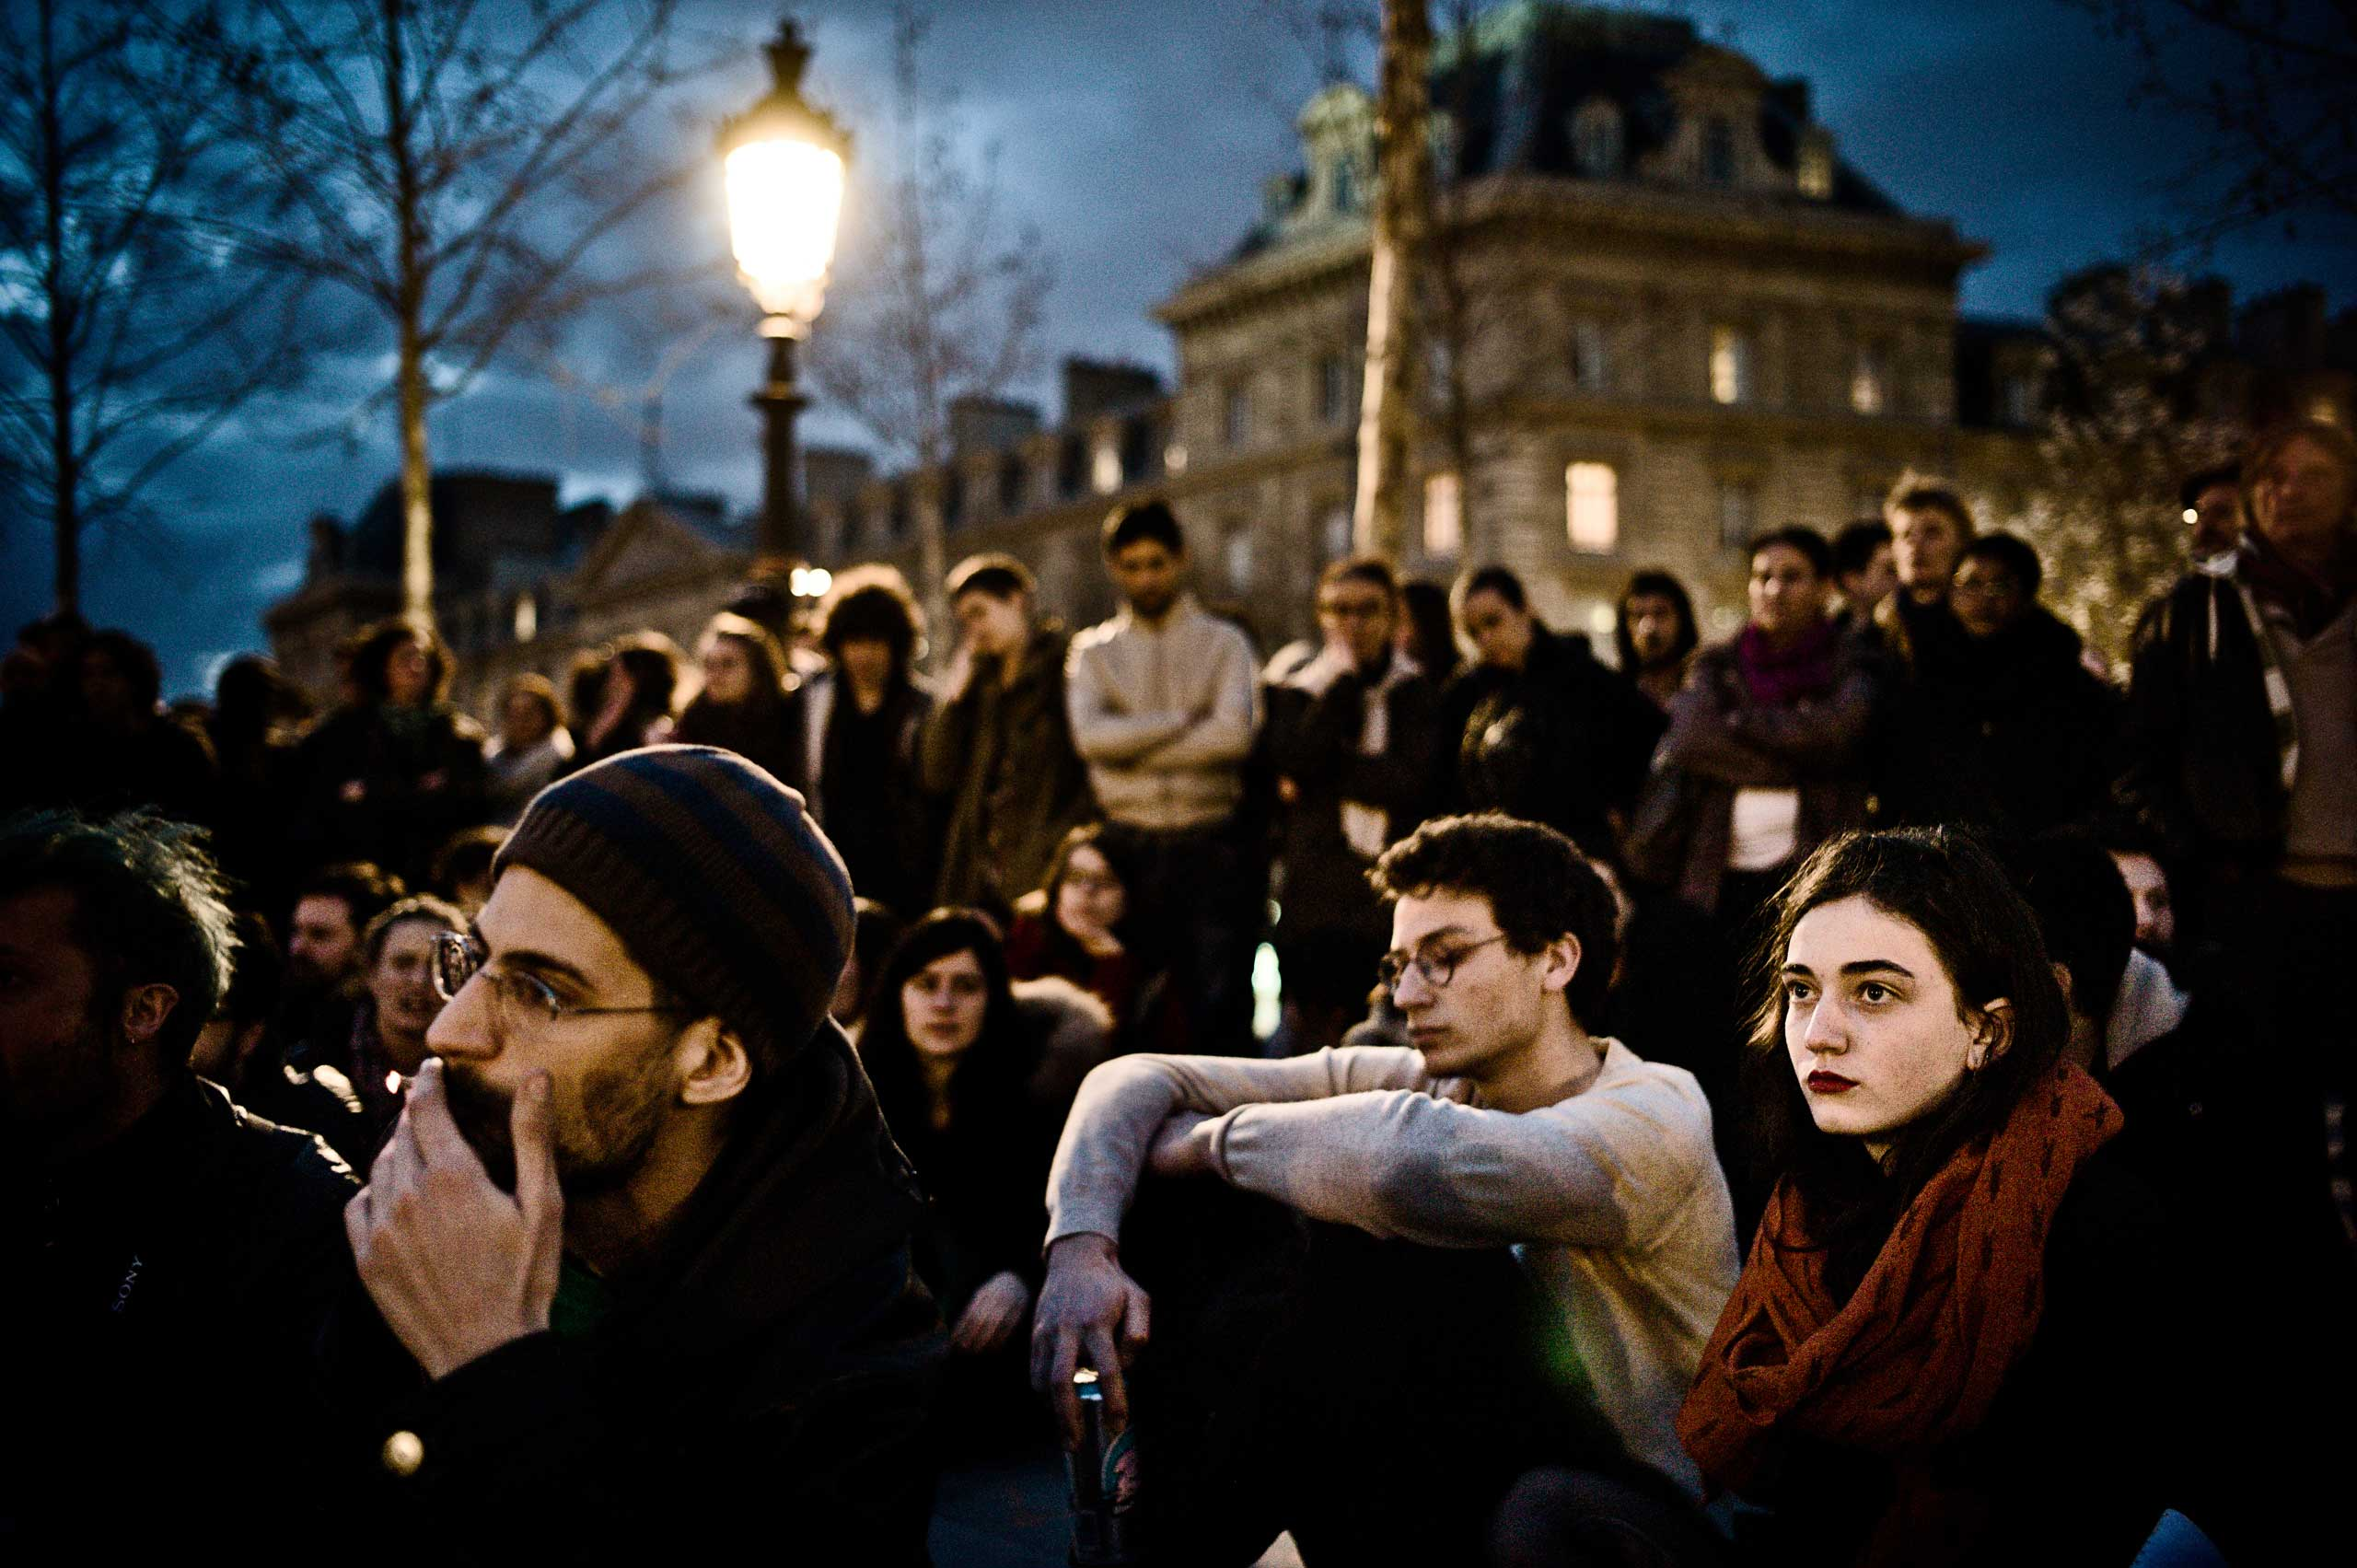 The crowd sits in circles listening to members of the movement speak,  all evening, every day at the Nuit Debout.